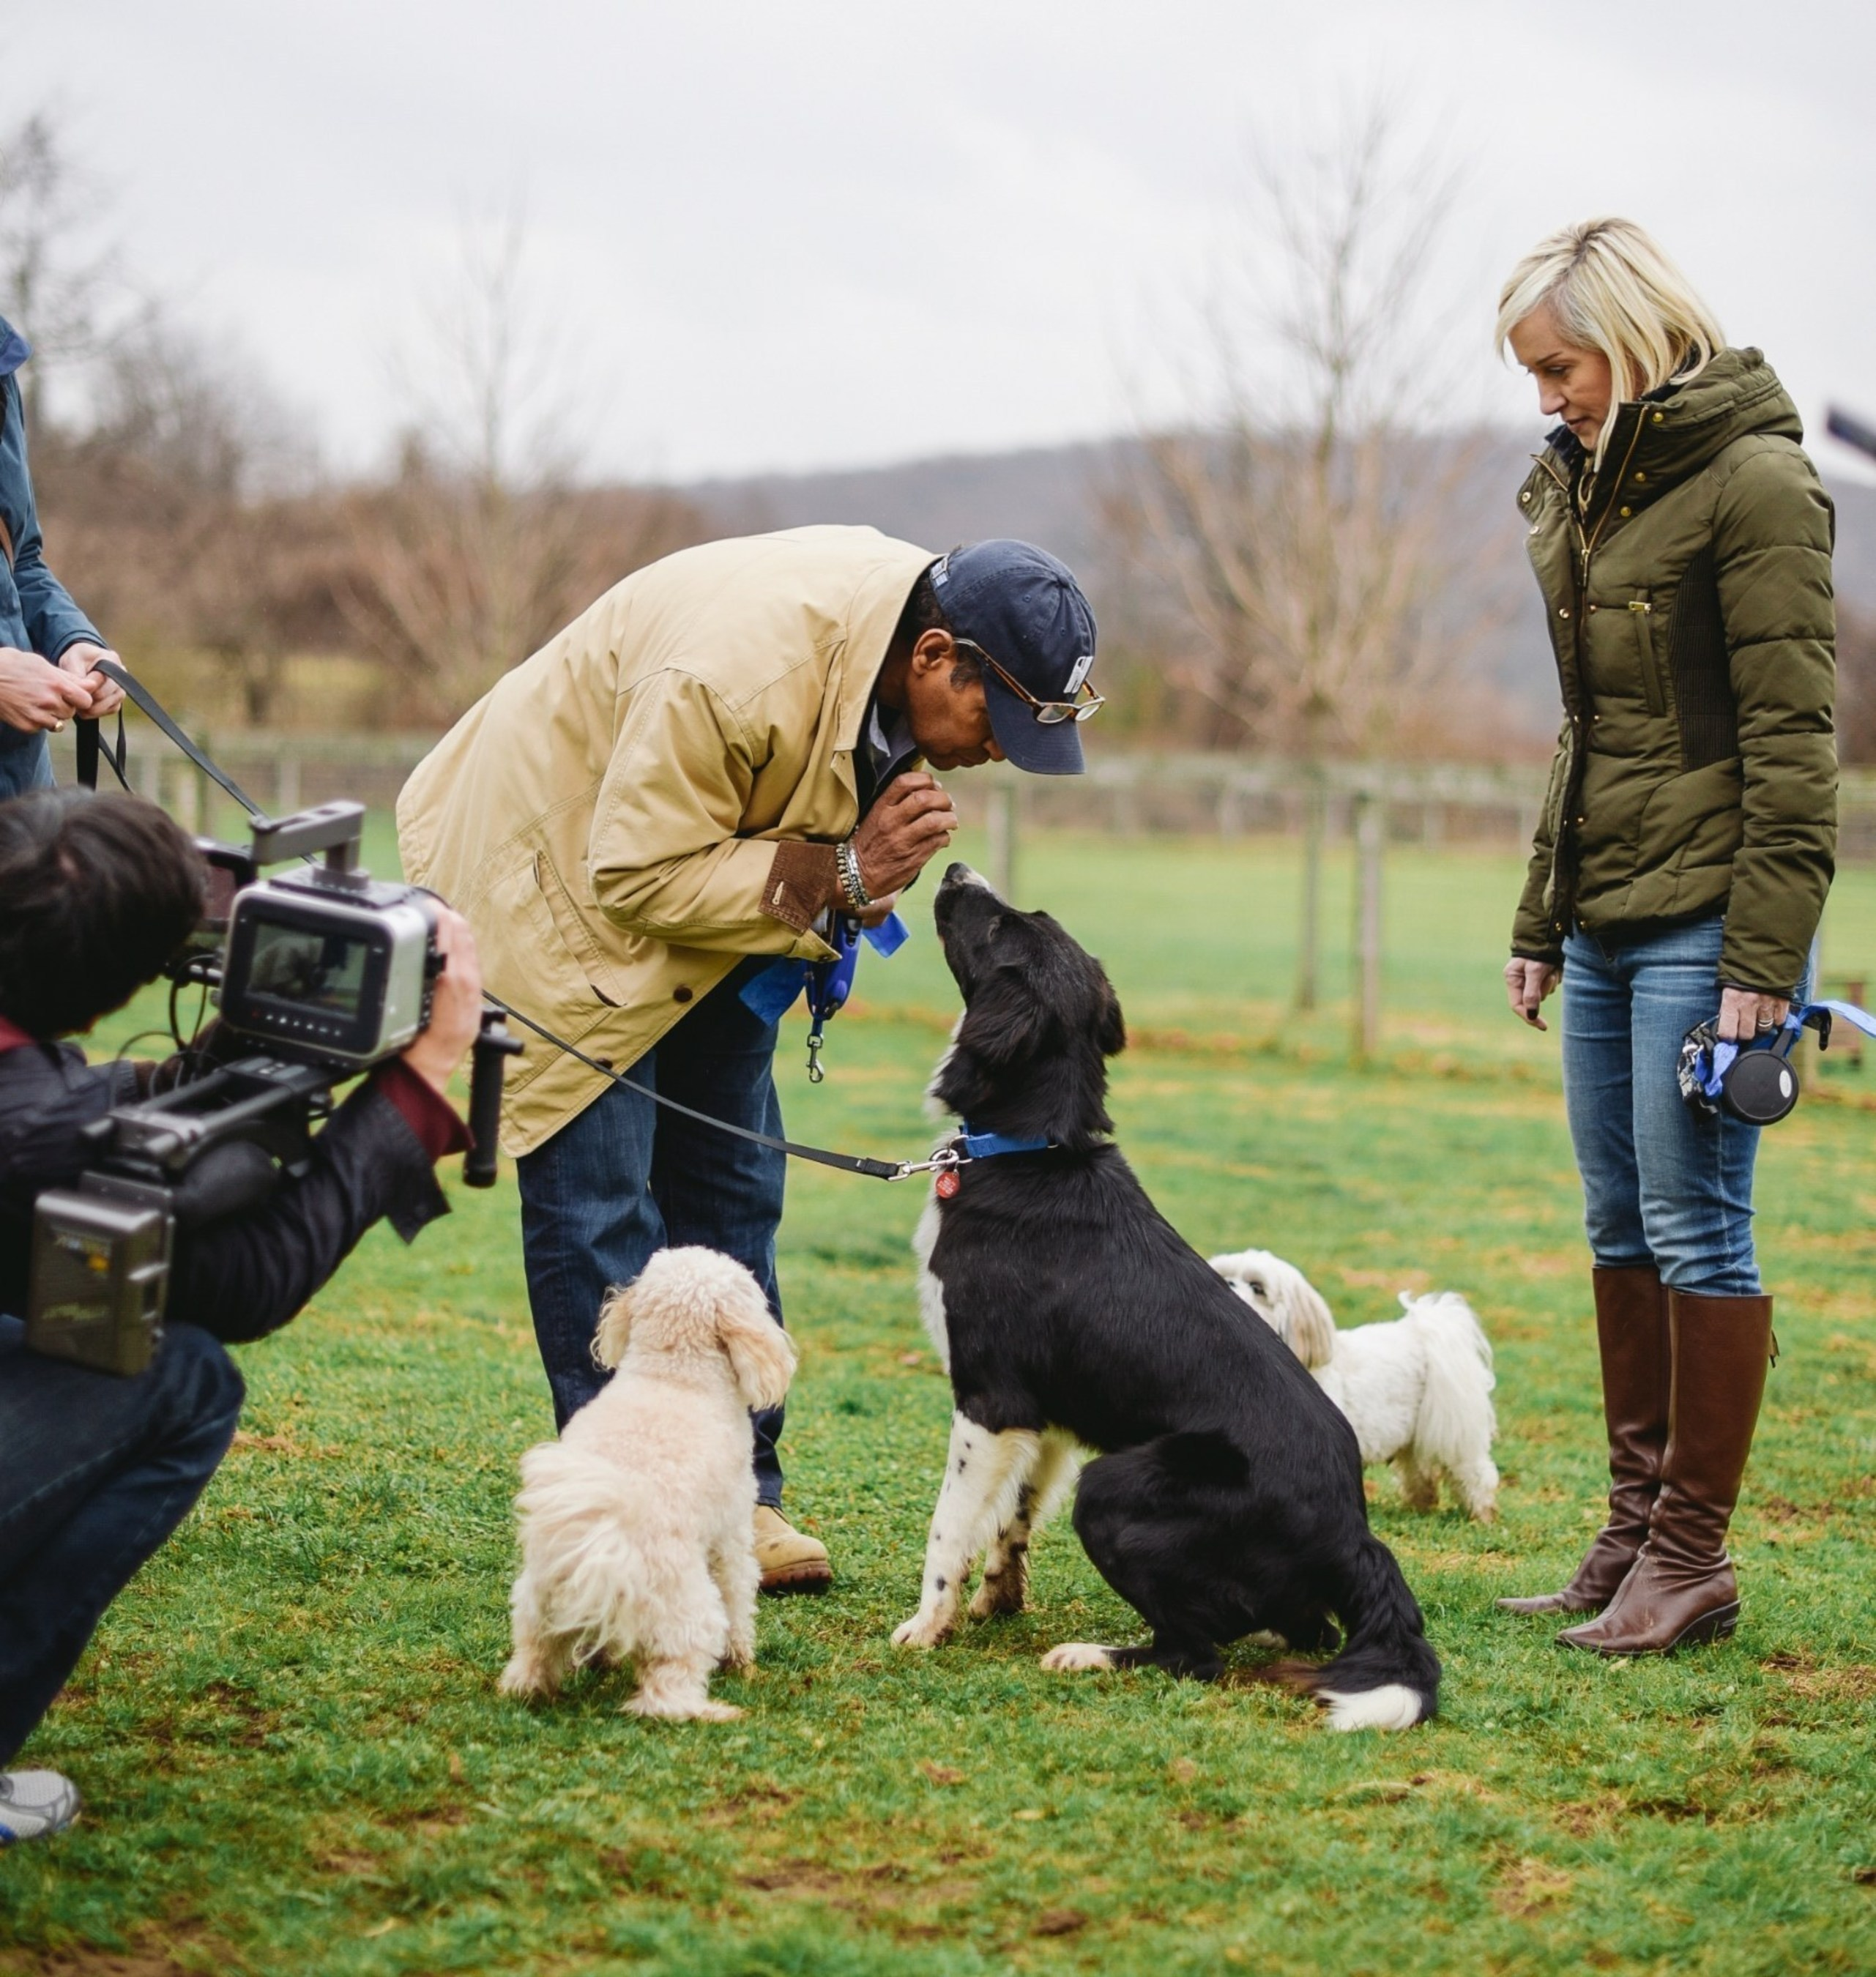 NBC Owned Television Stations To Air 'Best In Shelter With Jill Rappaport' on February 21 (7:00 pm EST) Featuring Betty White, Bernadette Peters, Bryant Gumbel, Lindsey